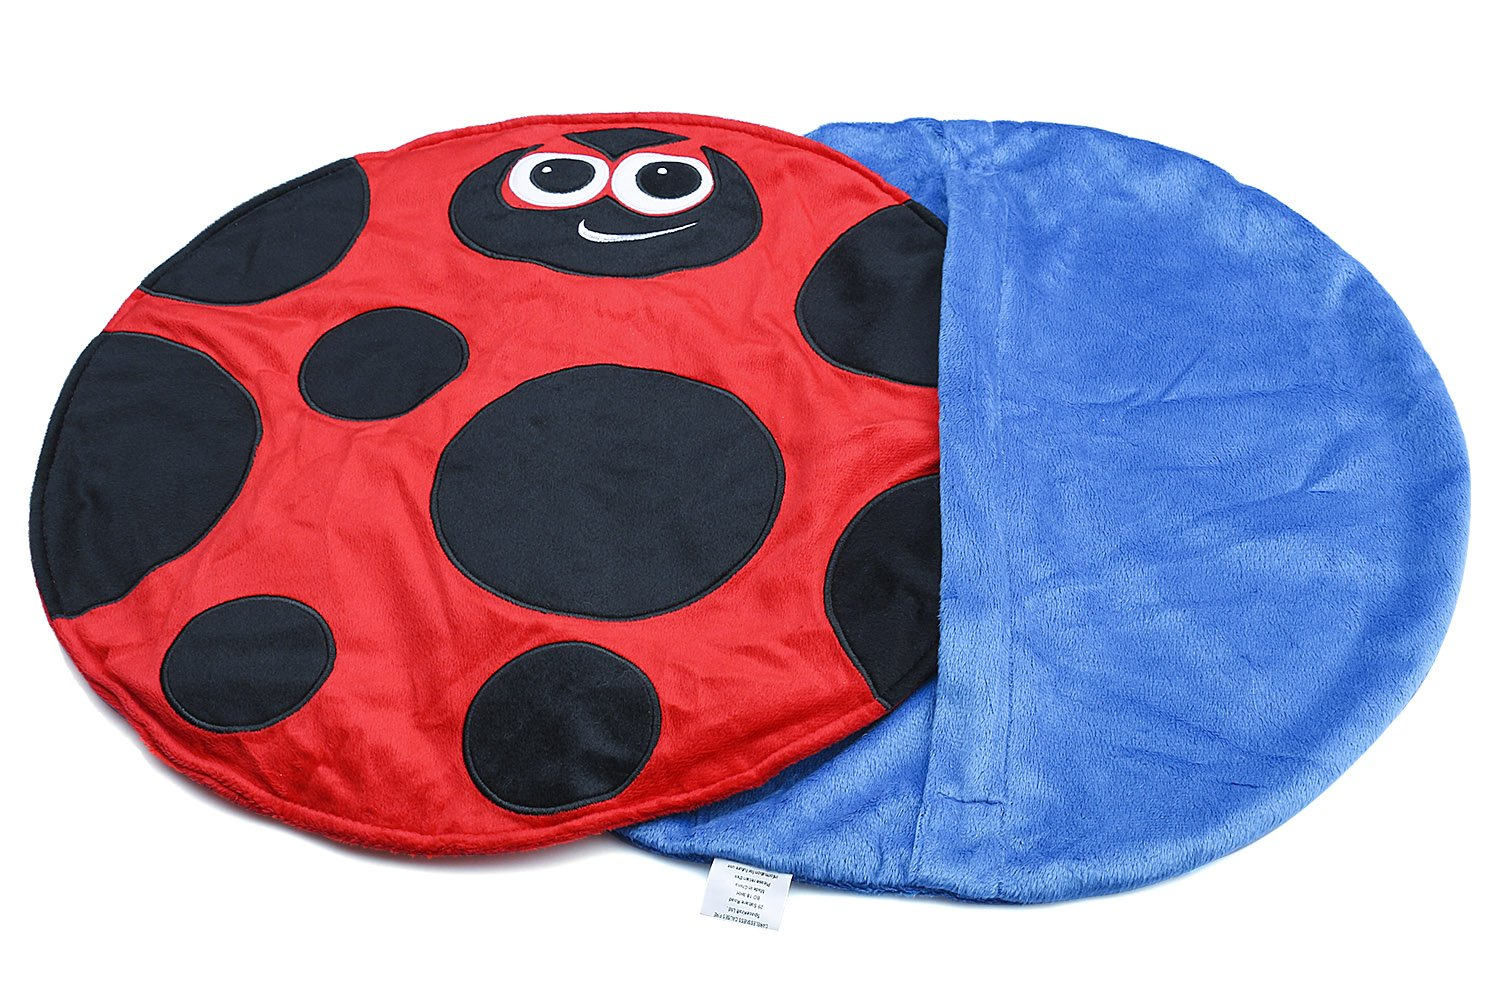 Placed on the leg 5LB Ladybird Weighted Lap Pad helps reduce Stress and Anxiety and provides Calming Deep Comfort and Cozy Feelings for Kids with Autism, ADHD, Aspergers and SPD by KINGDOM SECRET (Image #4)